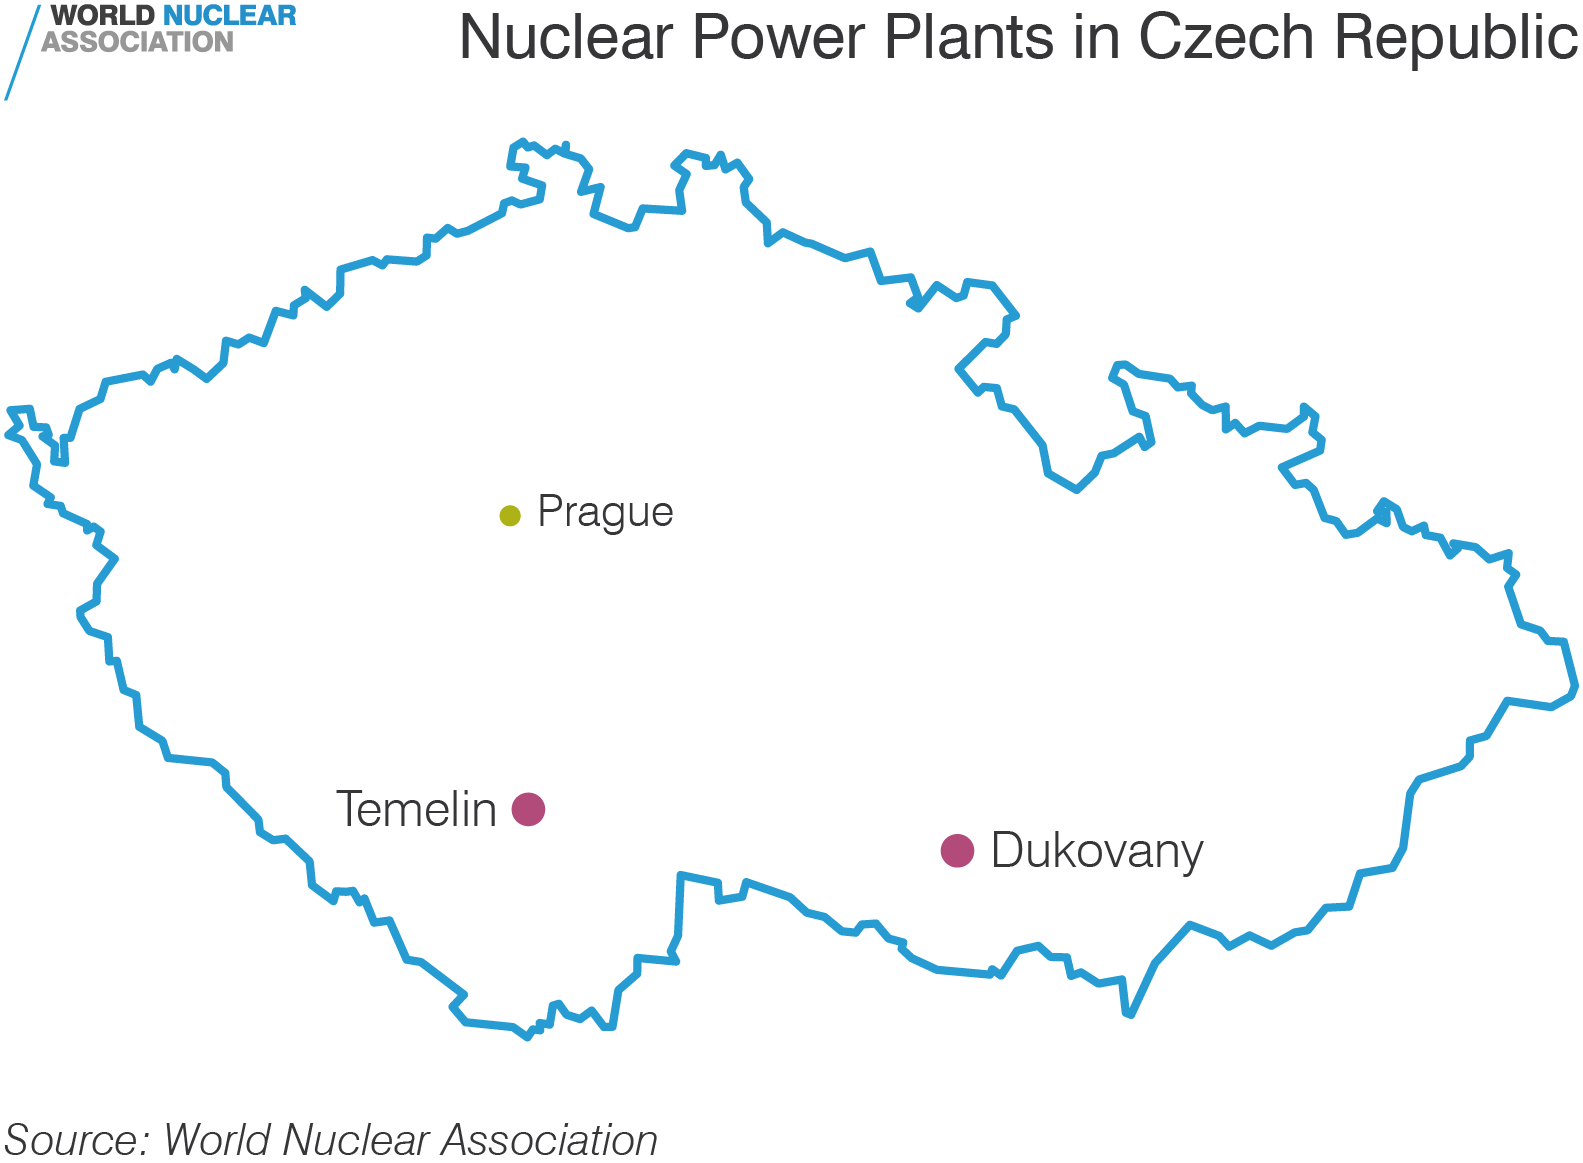 Nuclear Power Plants in Czech Republic